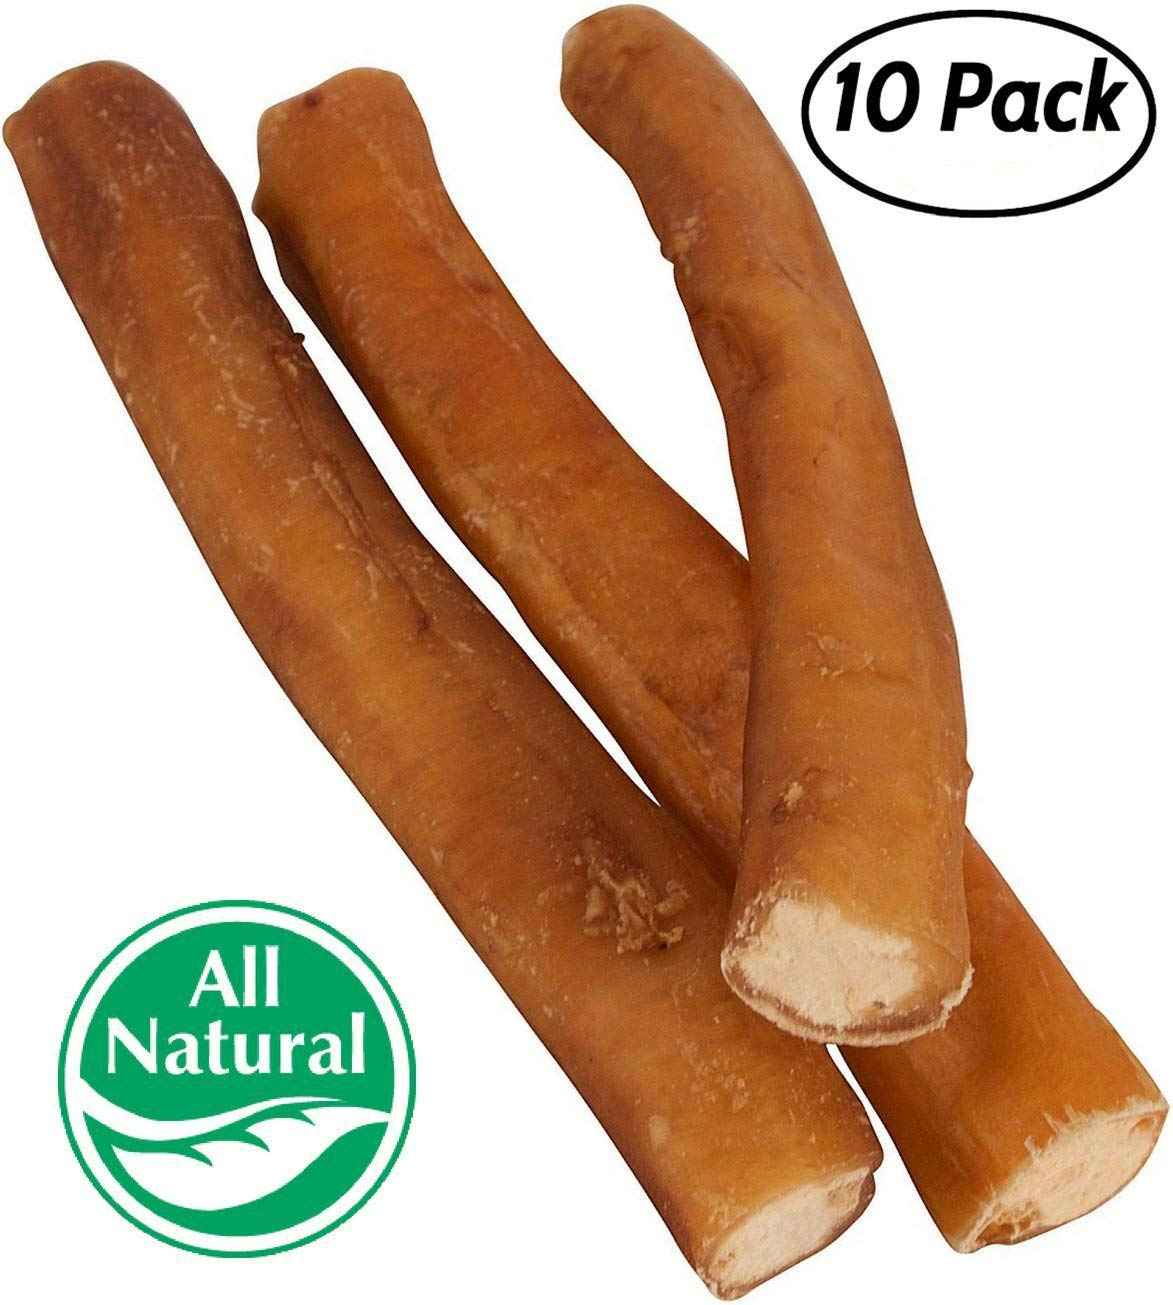 Pawstruck 7'' Straight Bully Sticks Dogs [X-LARGE THICKNESS] (10 Pack) All Natural & Odorless Bully Bones | Long Lasting Dog Chew Dental Treats | Best Thick Bullie Sticks Dogs Puppies | Grass-Fed Beef